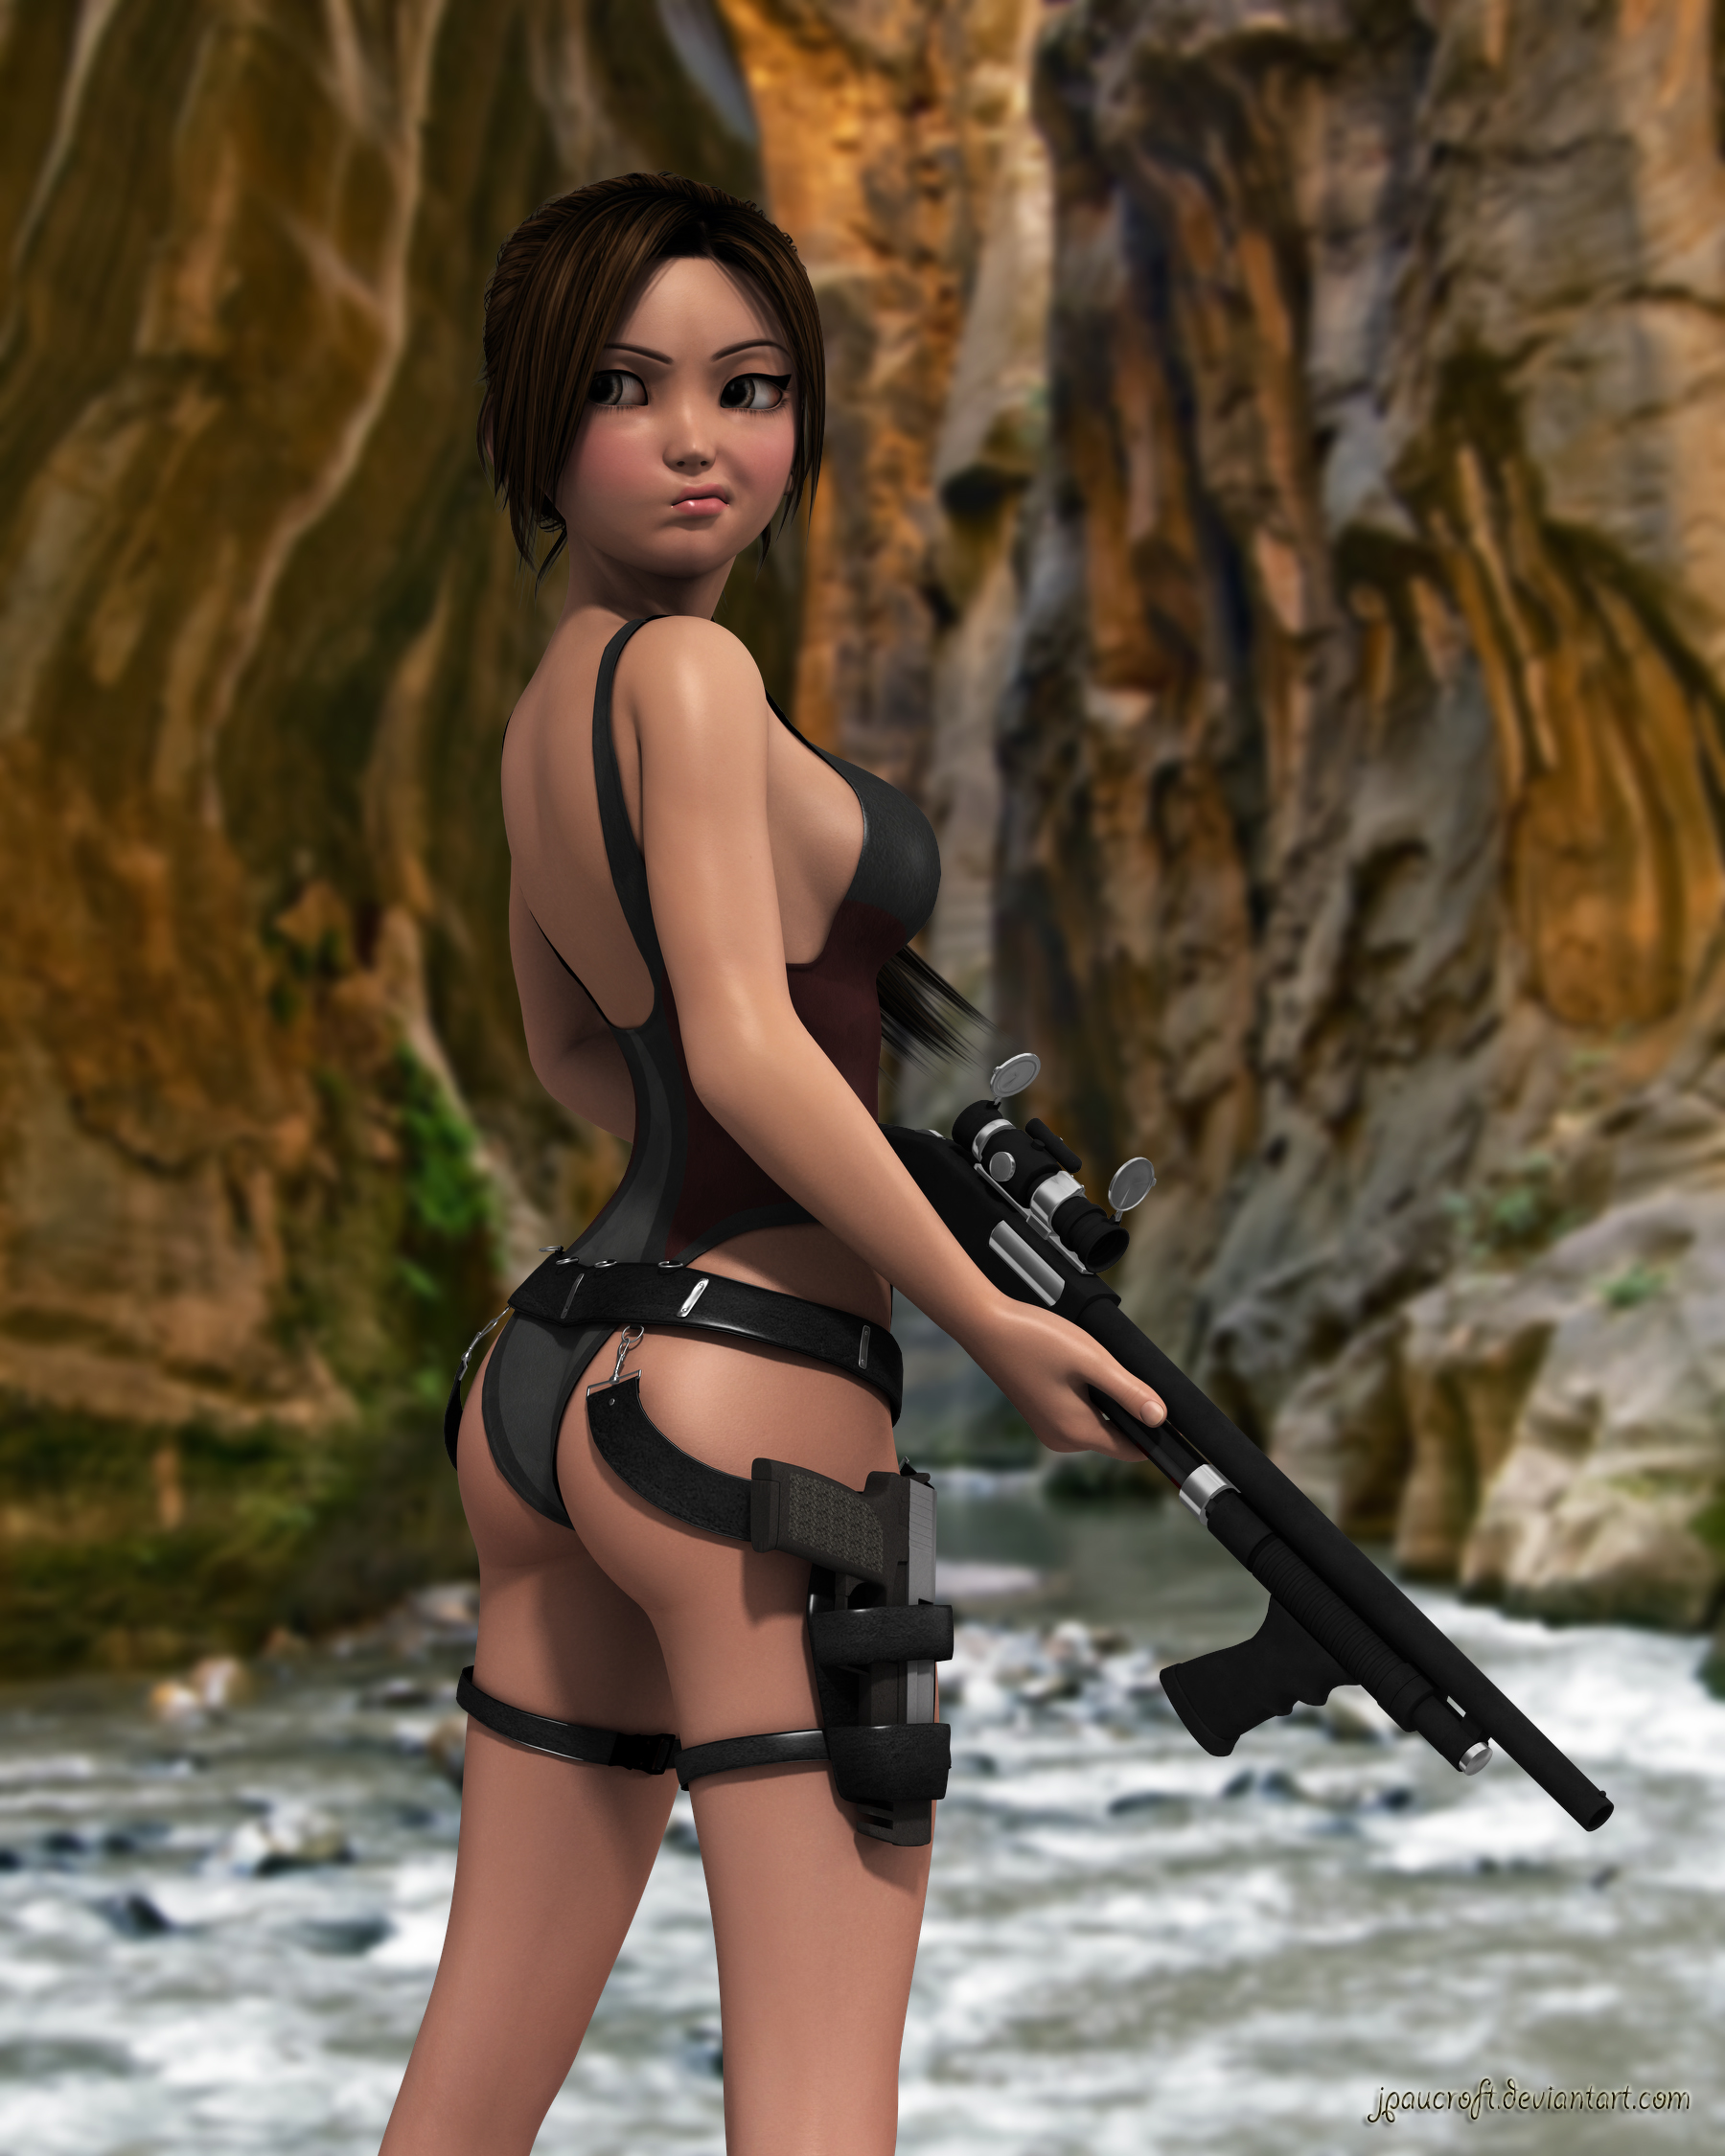 Sexy toon tomb rider porn images erotic galleries